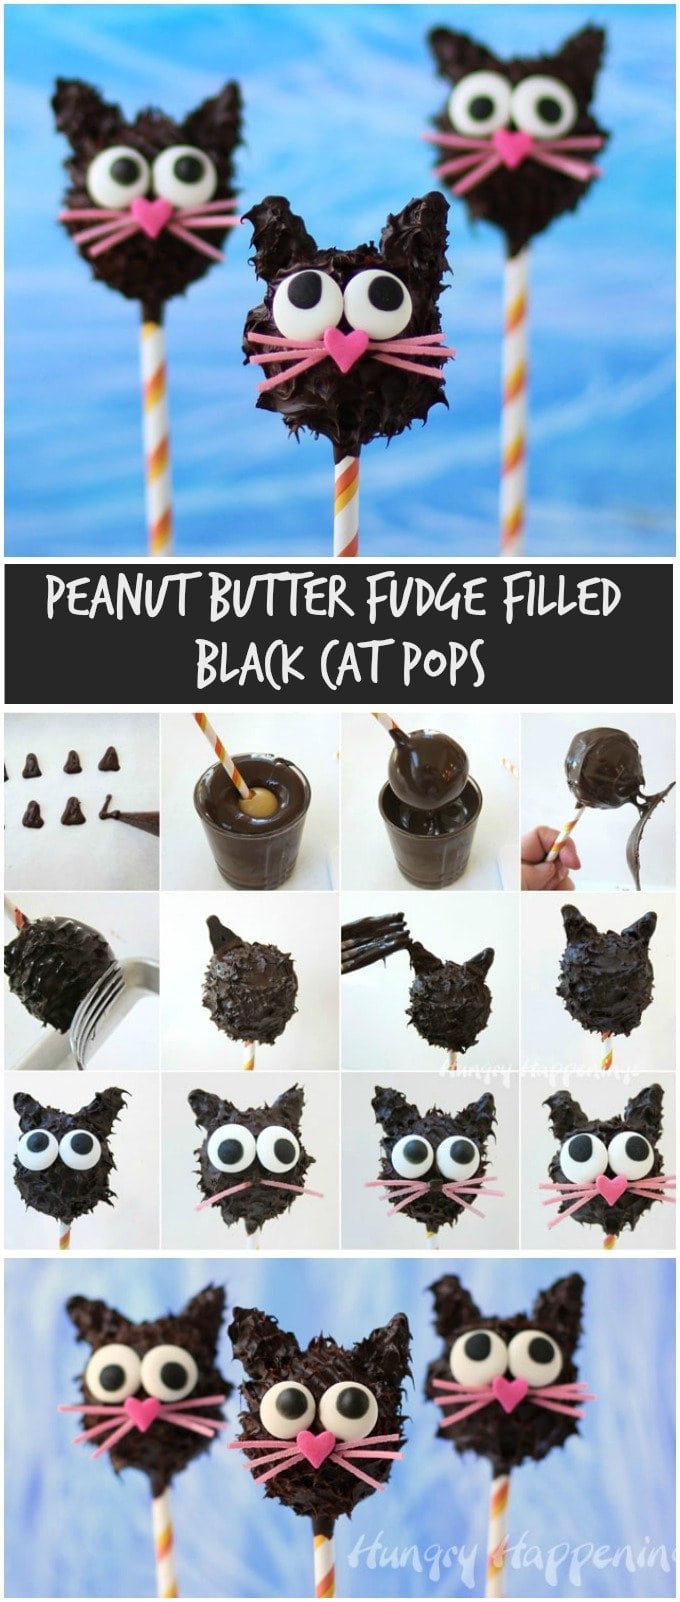 This Halloween turn lusciously creamy peanut butter fudge into adorably cute Peanut Buffer Fudge Filled Black Cat Pops. See how at HungryHappenings.com